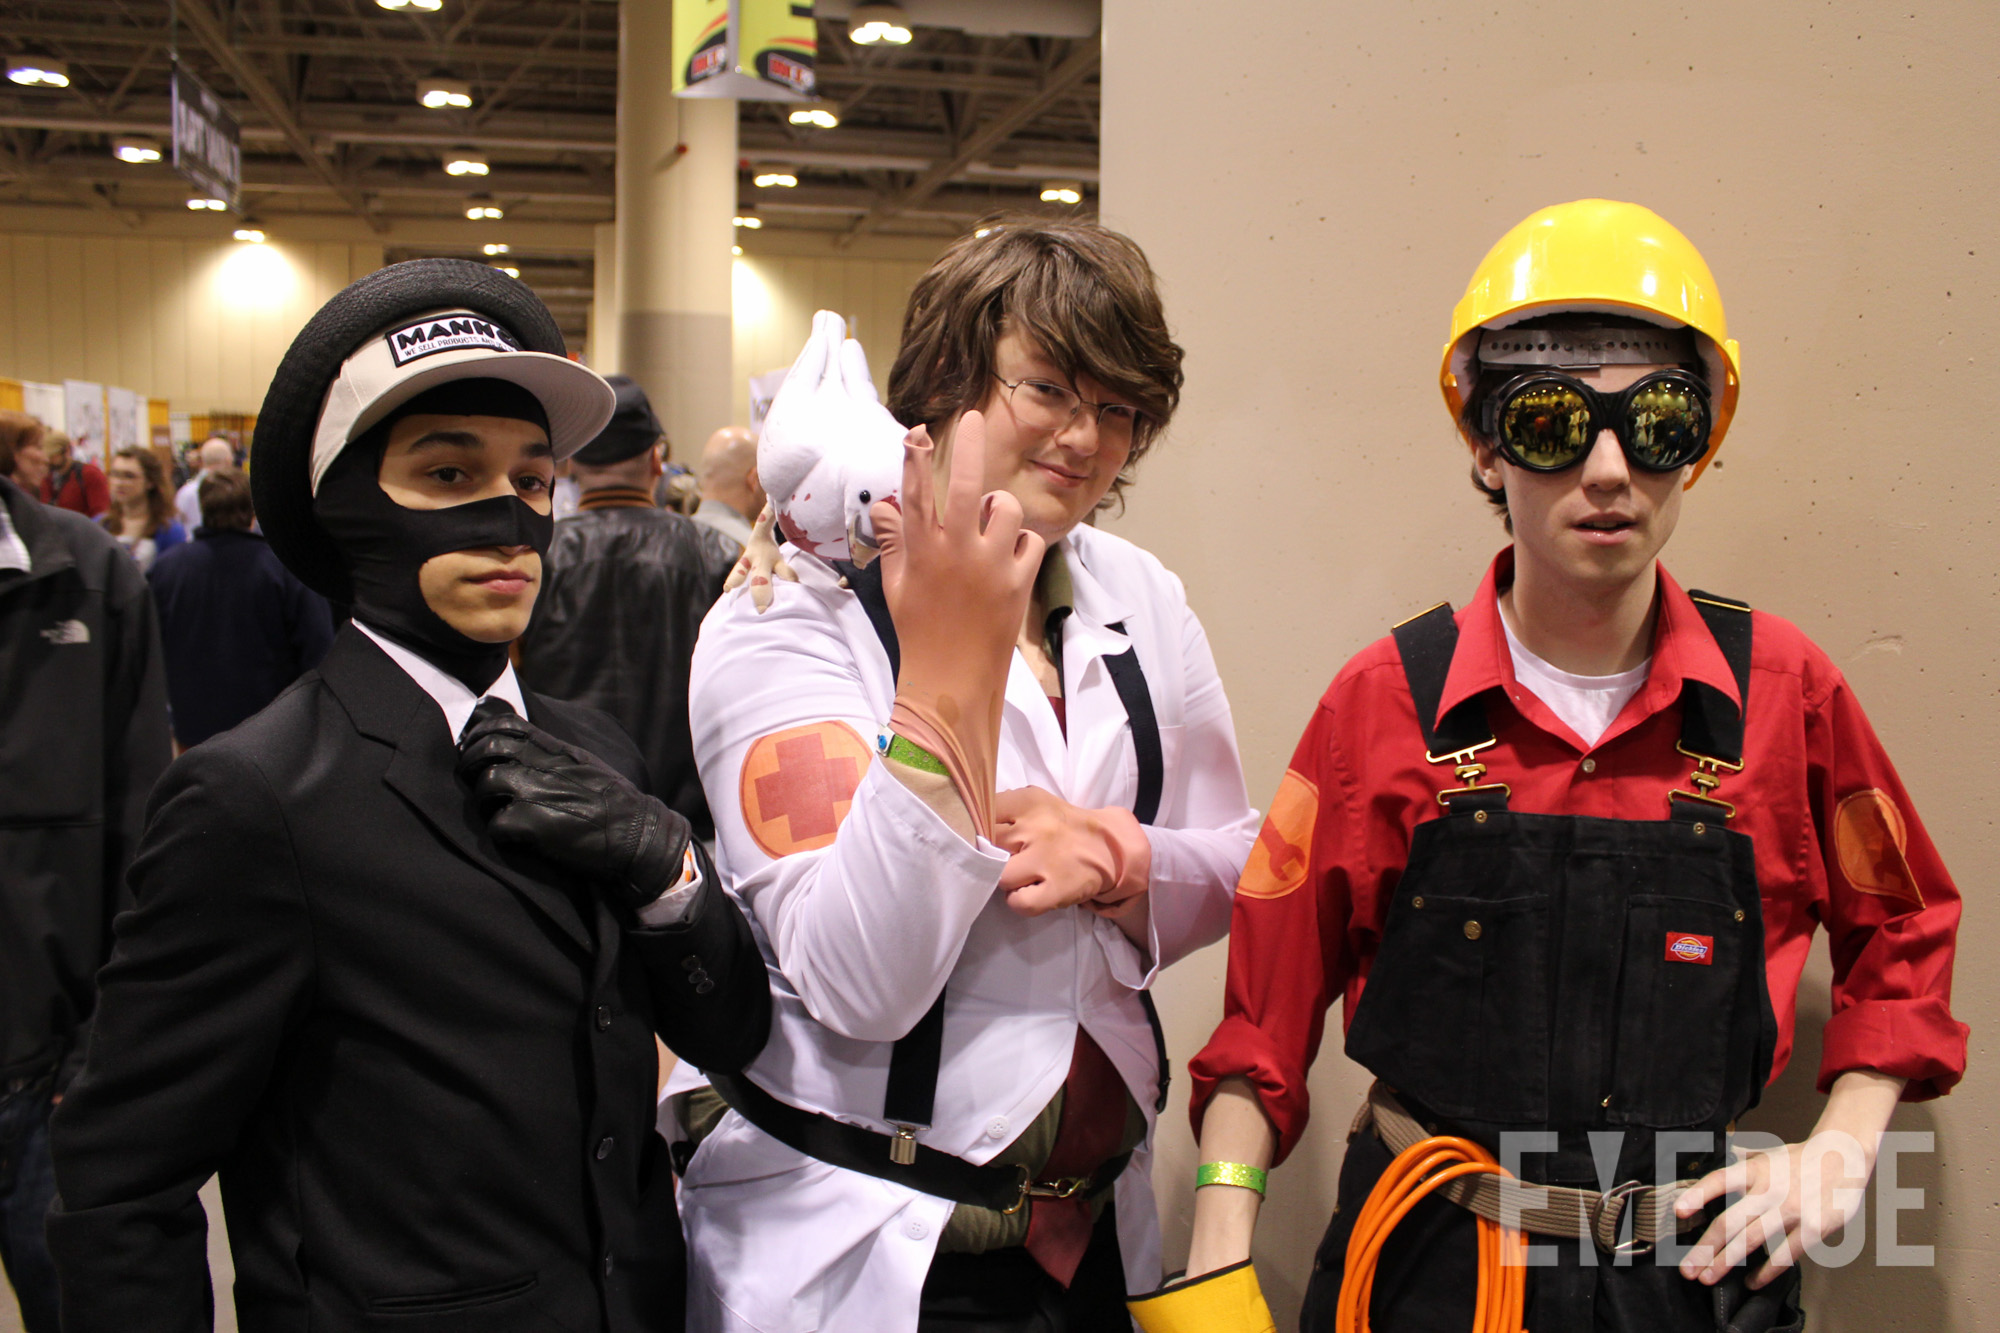 The Spy, Medic and Engineer took a quick break from Team Fortress 2 for a picture